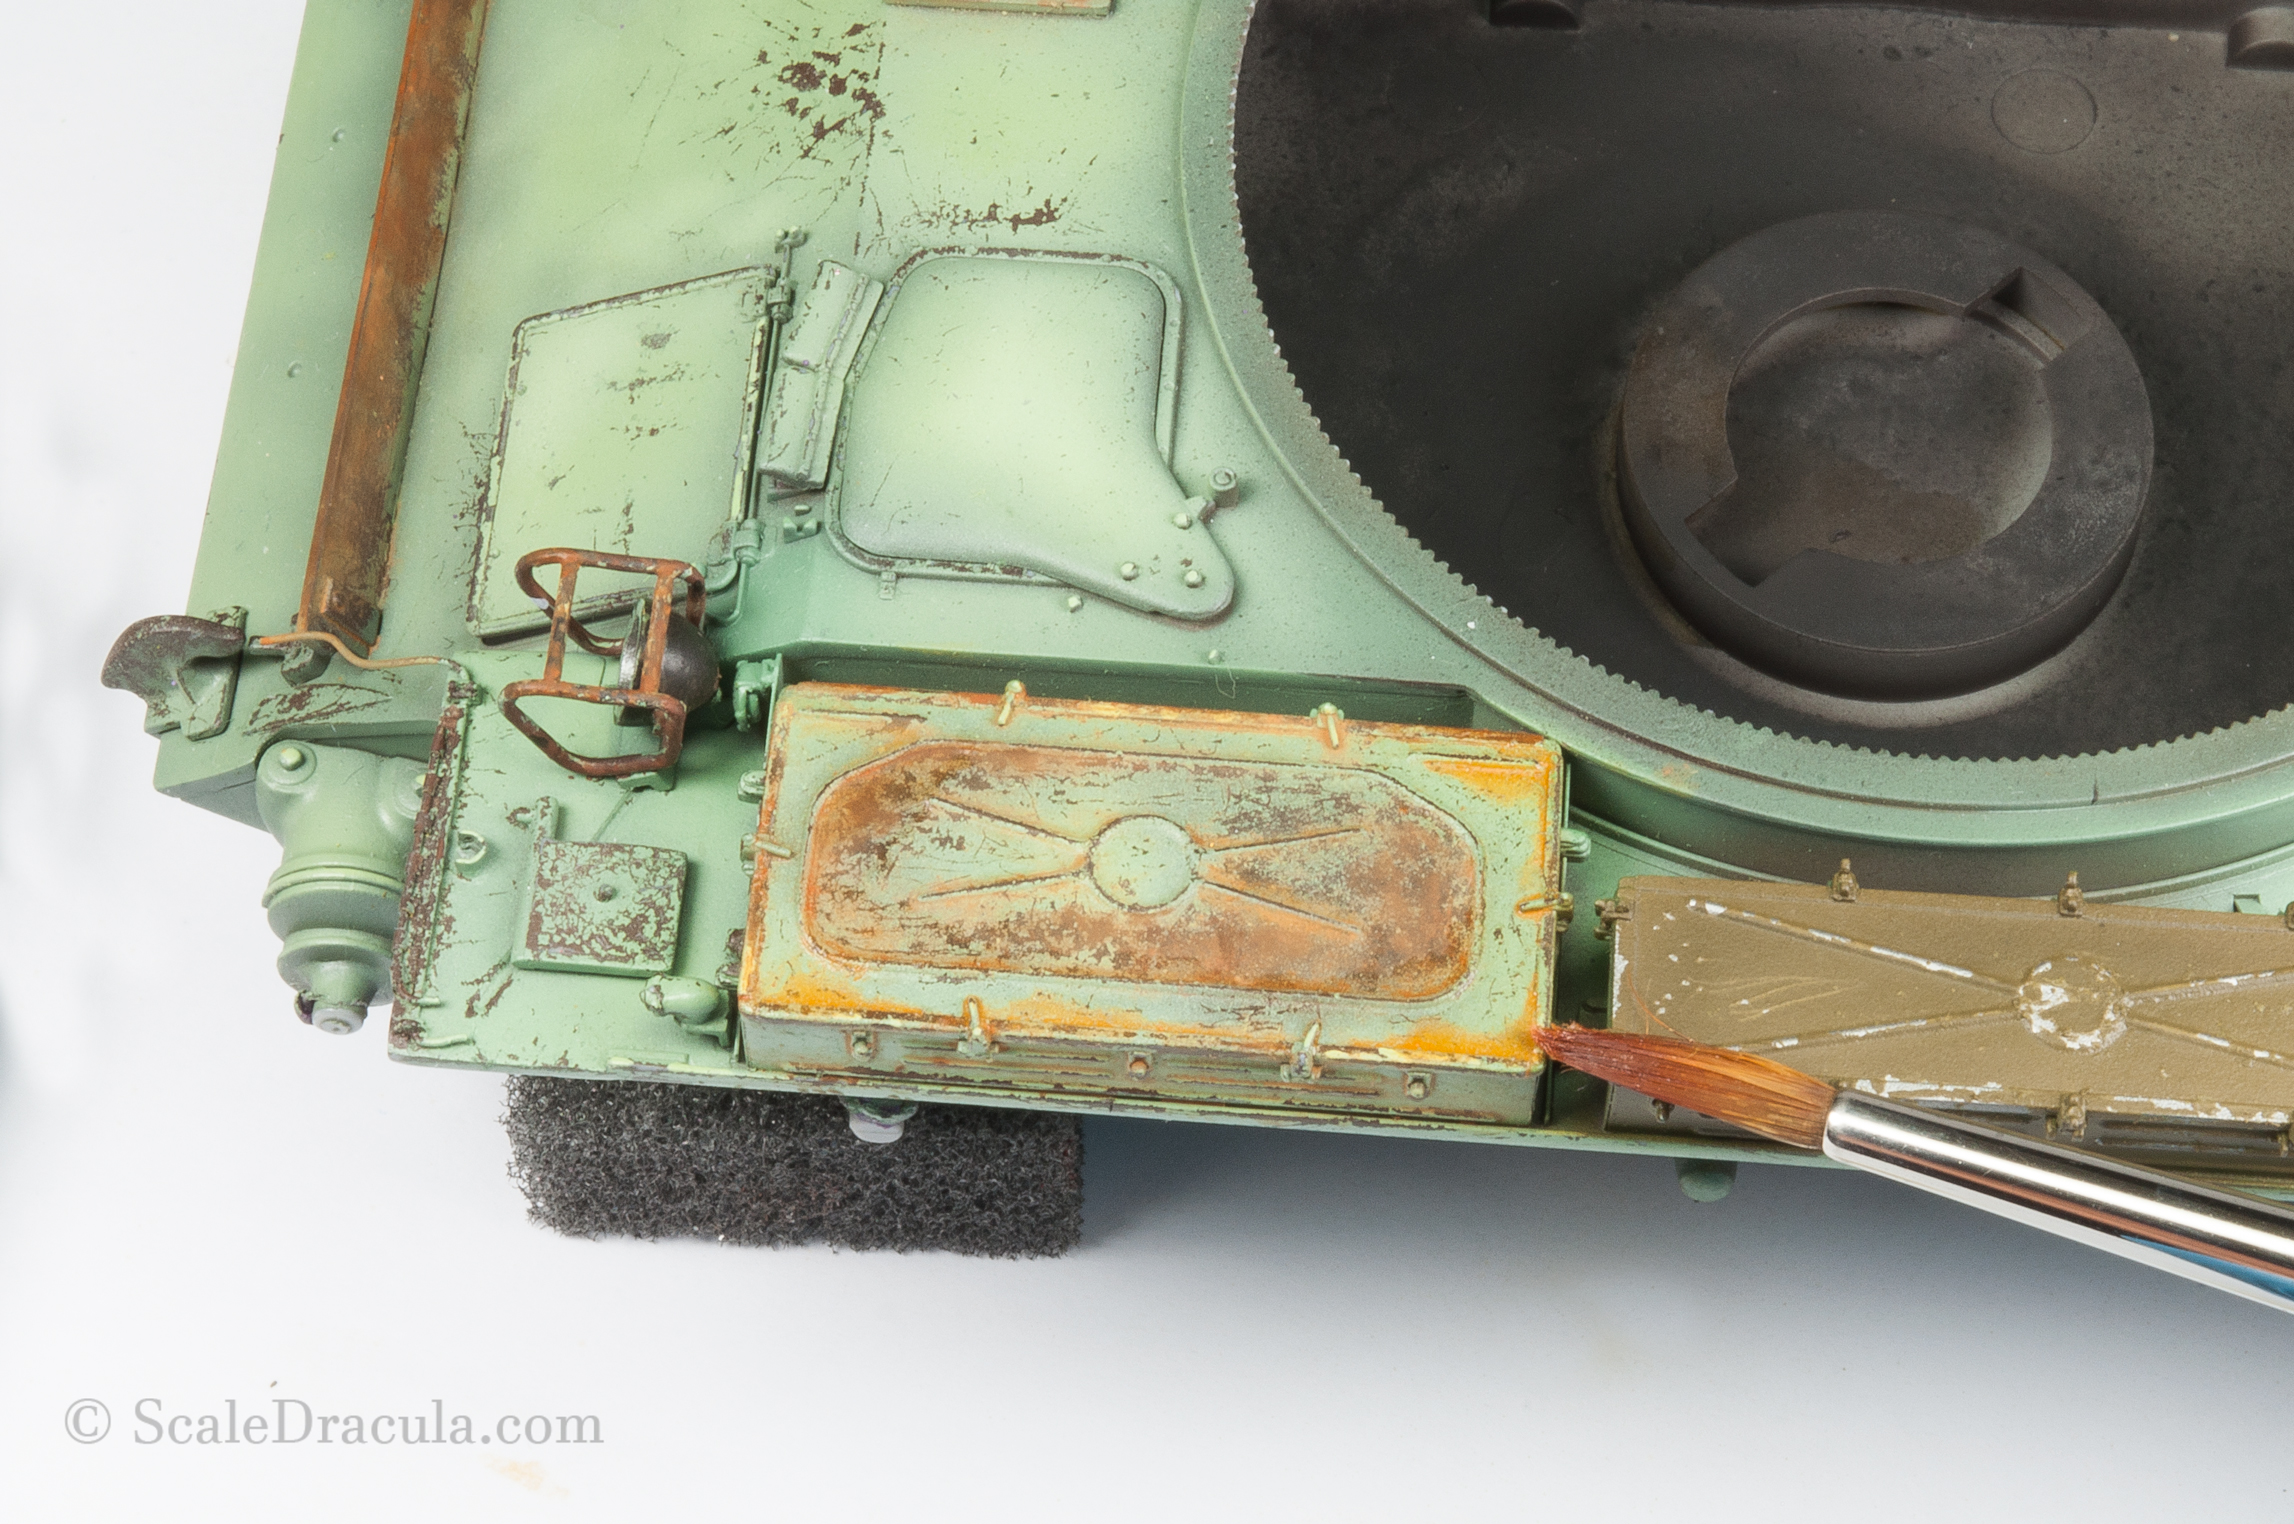 The rust done with speckling. ZSU-57 by TAKOM